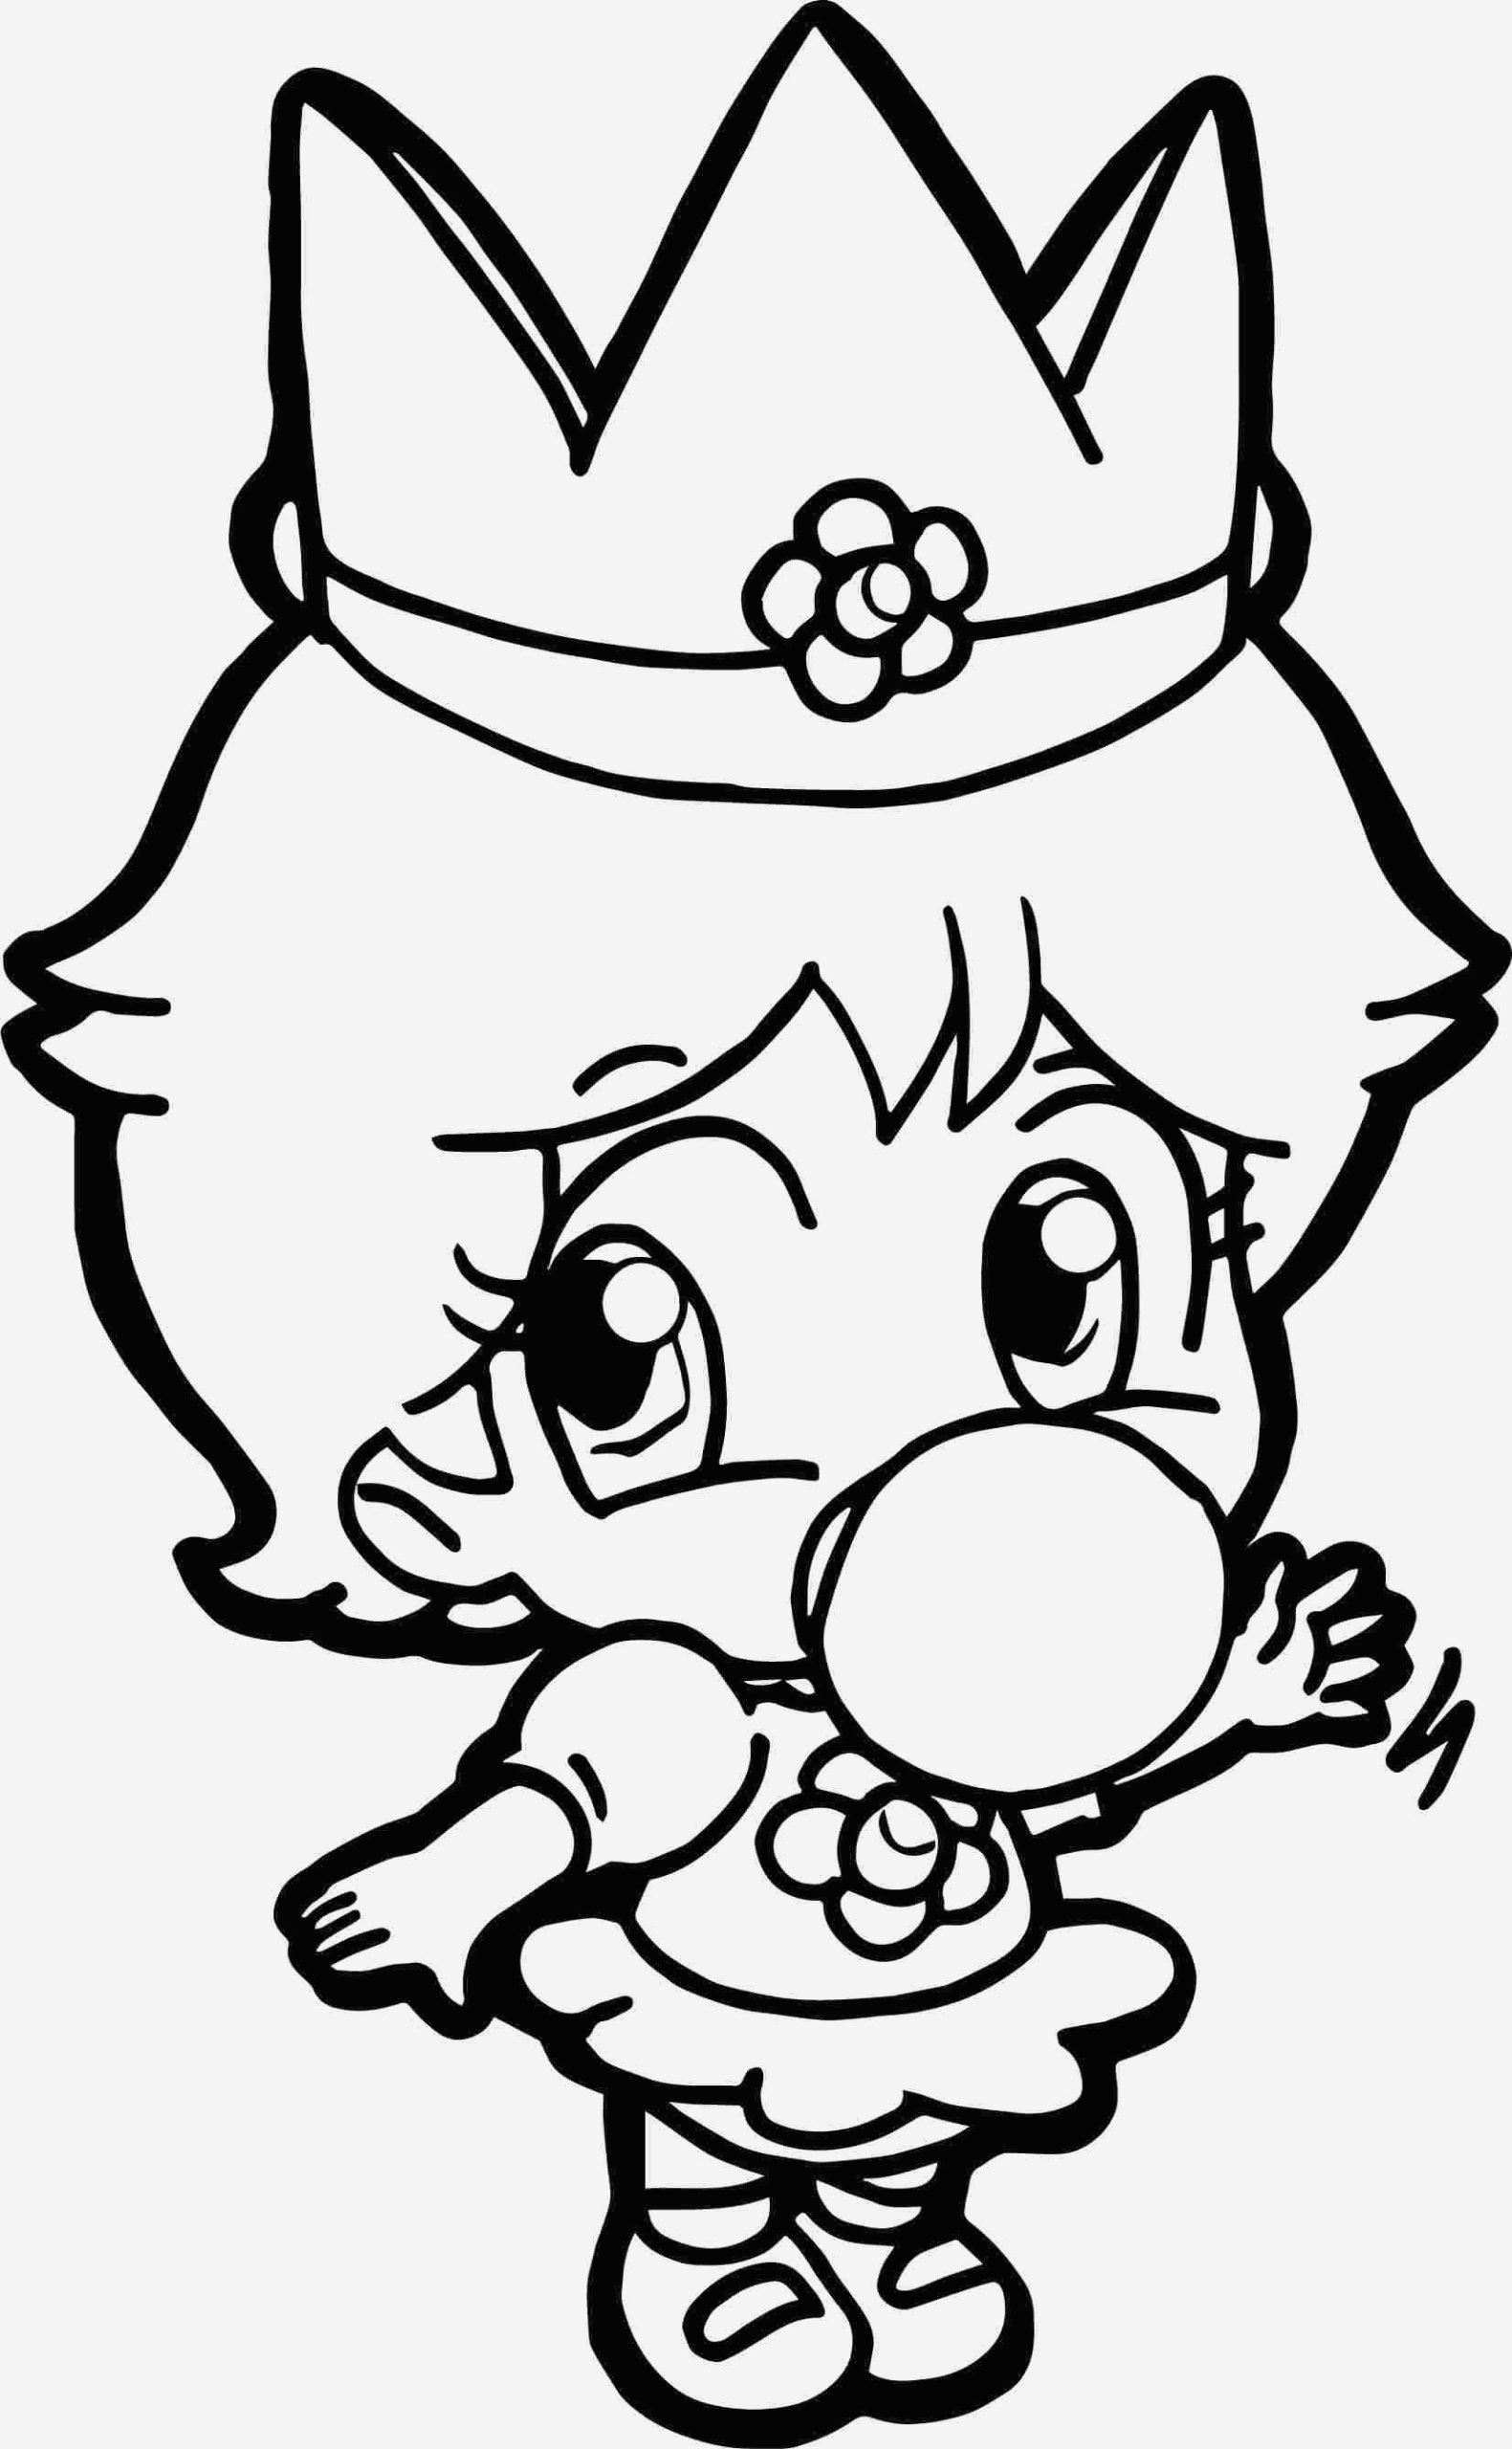 Coloriage Mario Kart Luxury Coloring Pages Coloring Daisy From Mario Kart Huangfei Of Coloriage Mario Kart